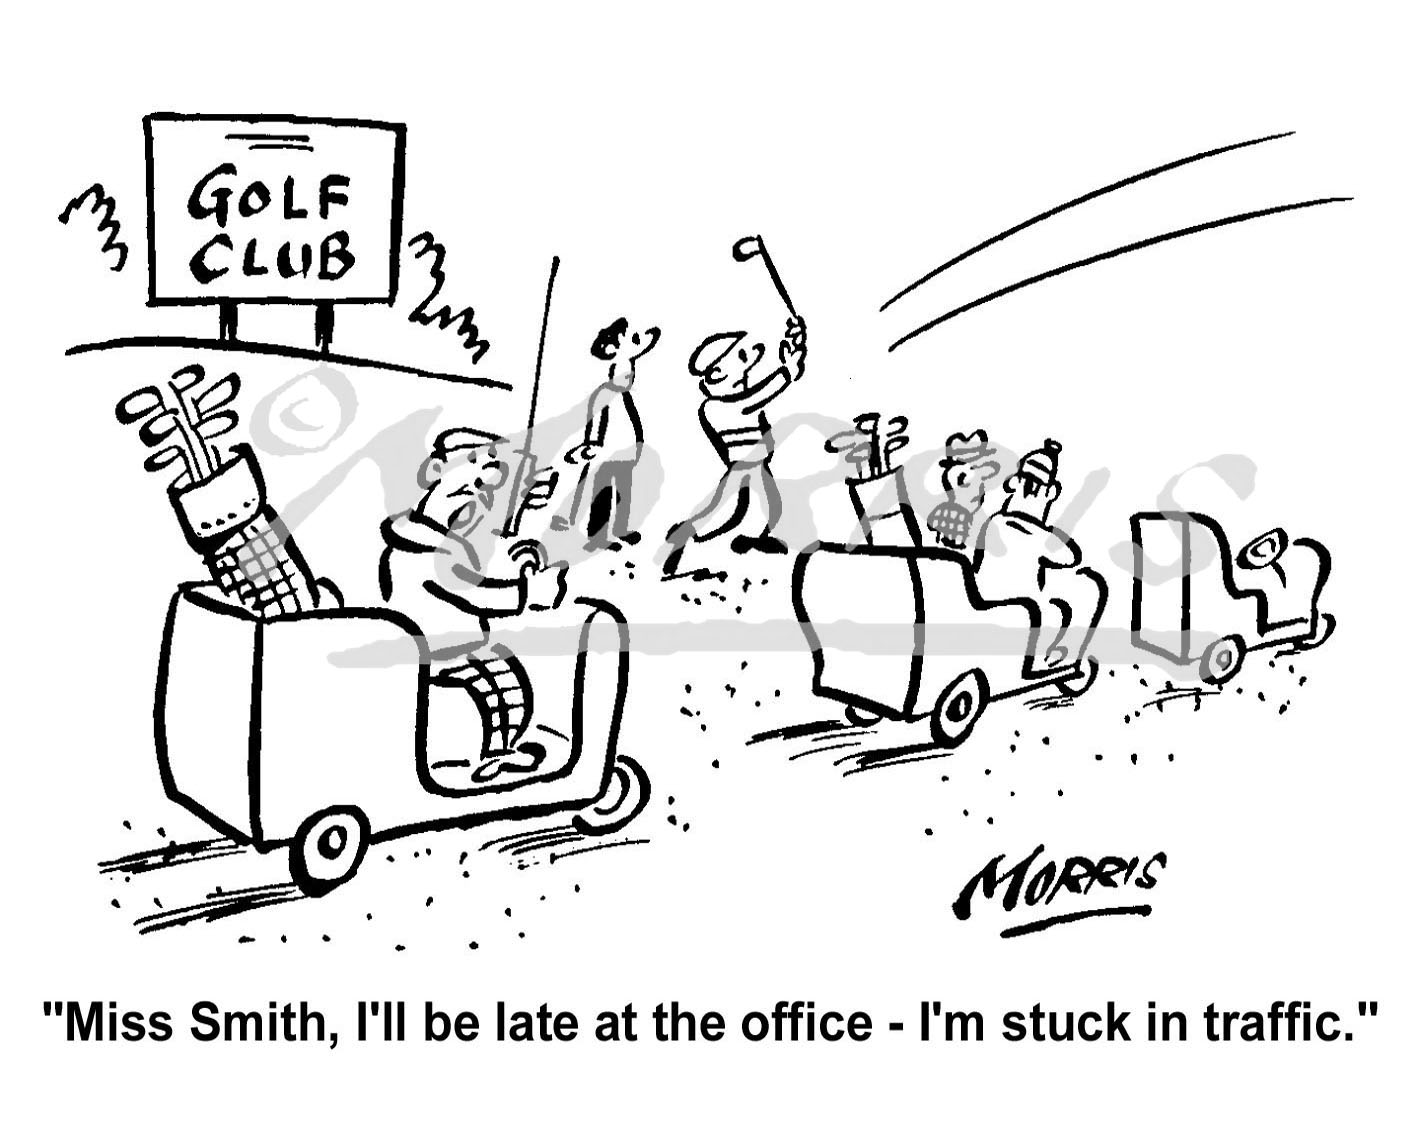 Business golf cartoon Ref: 1594bw